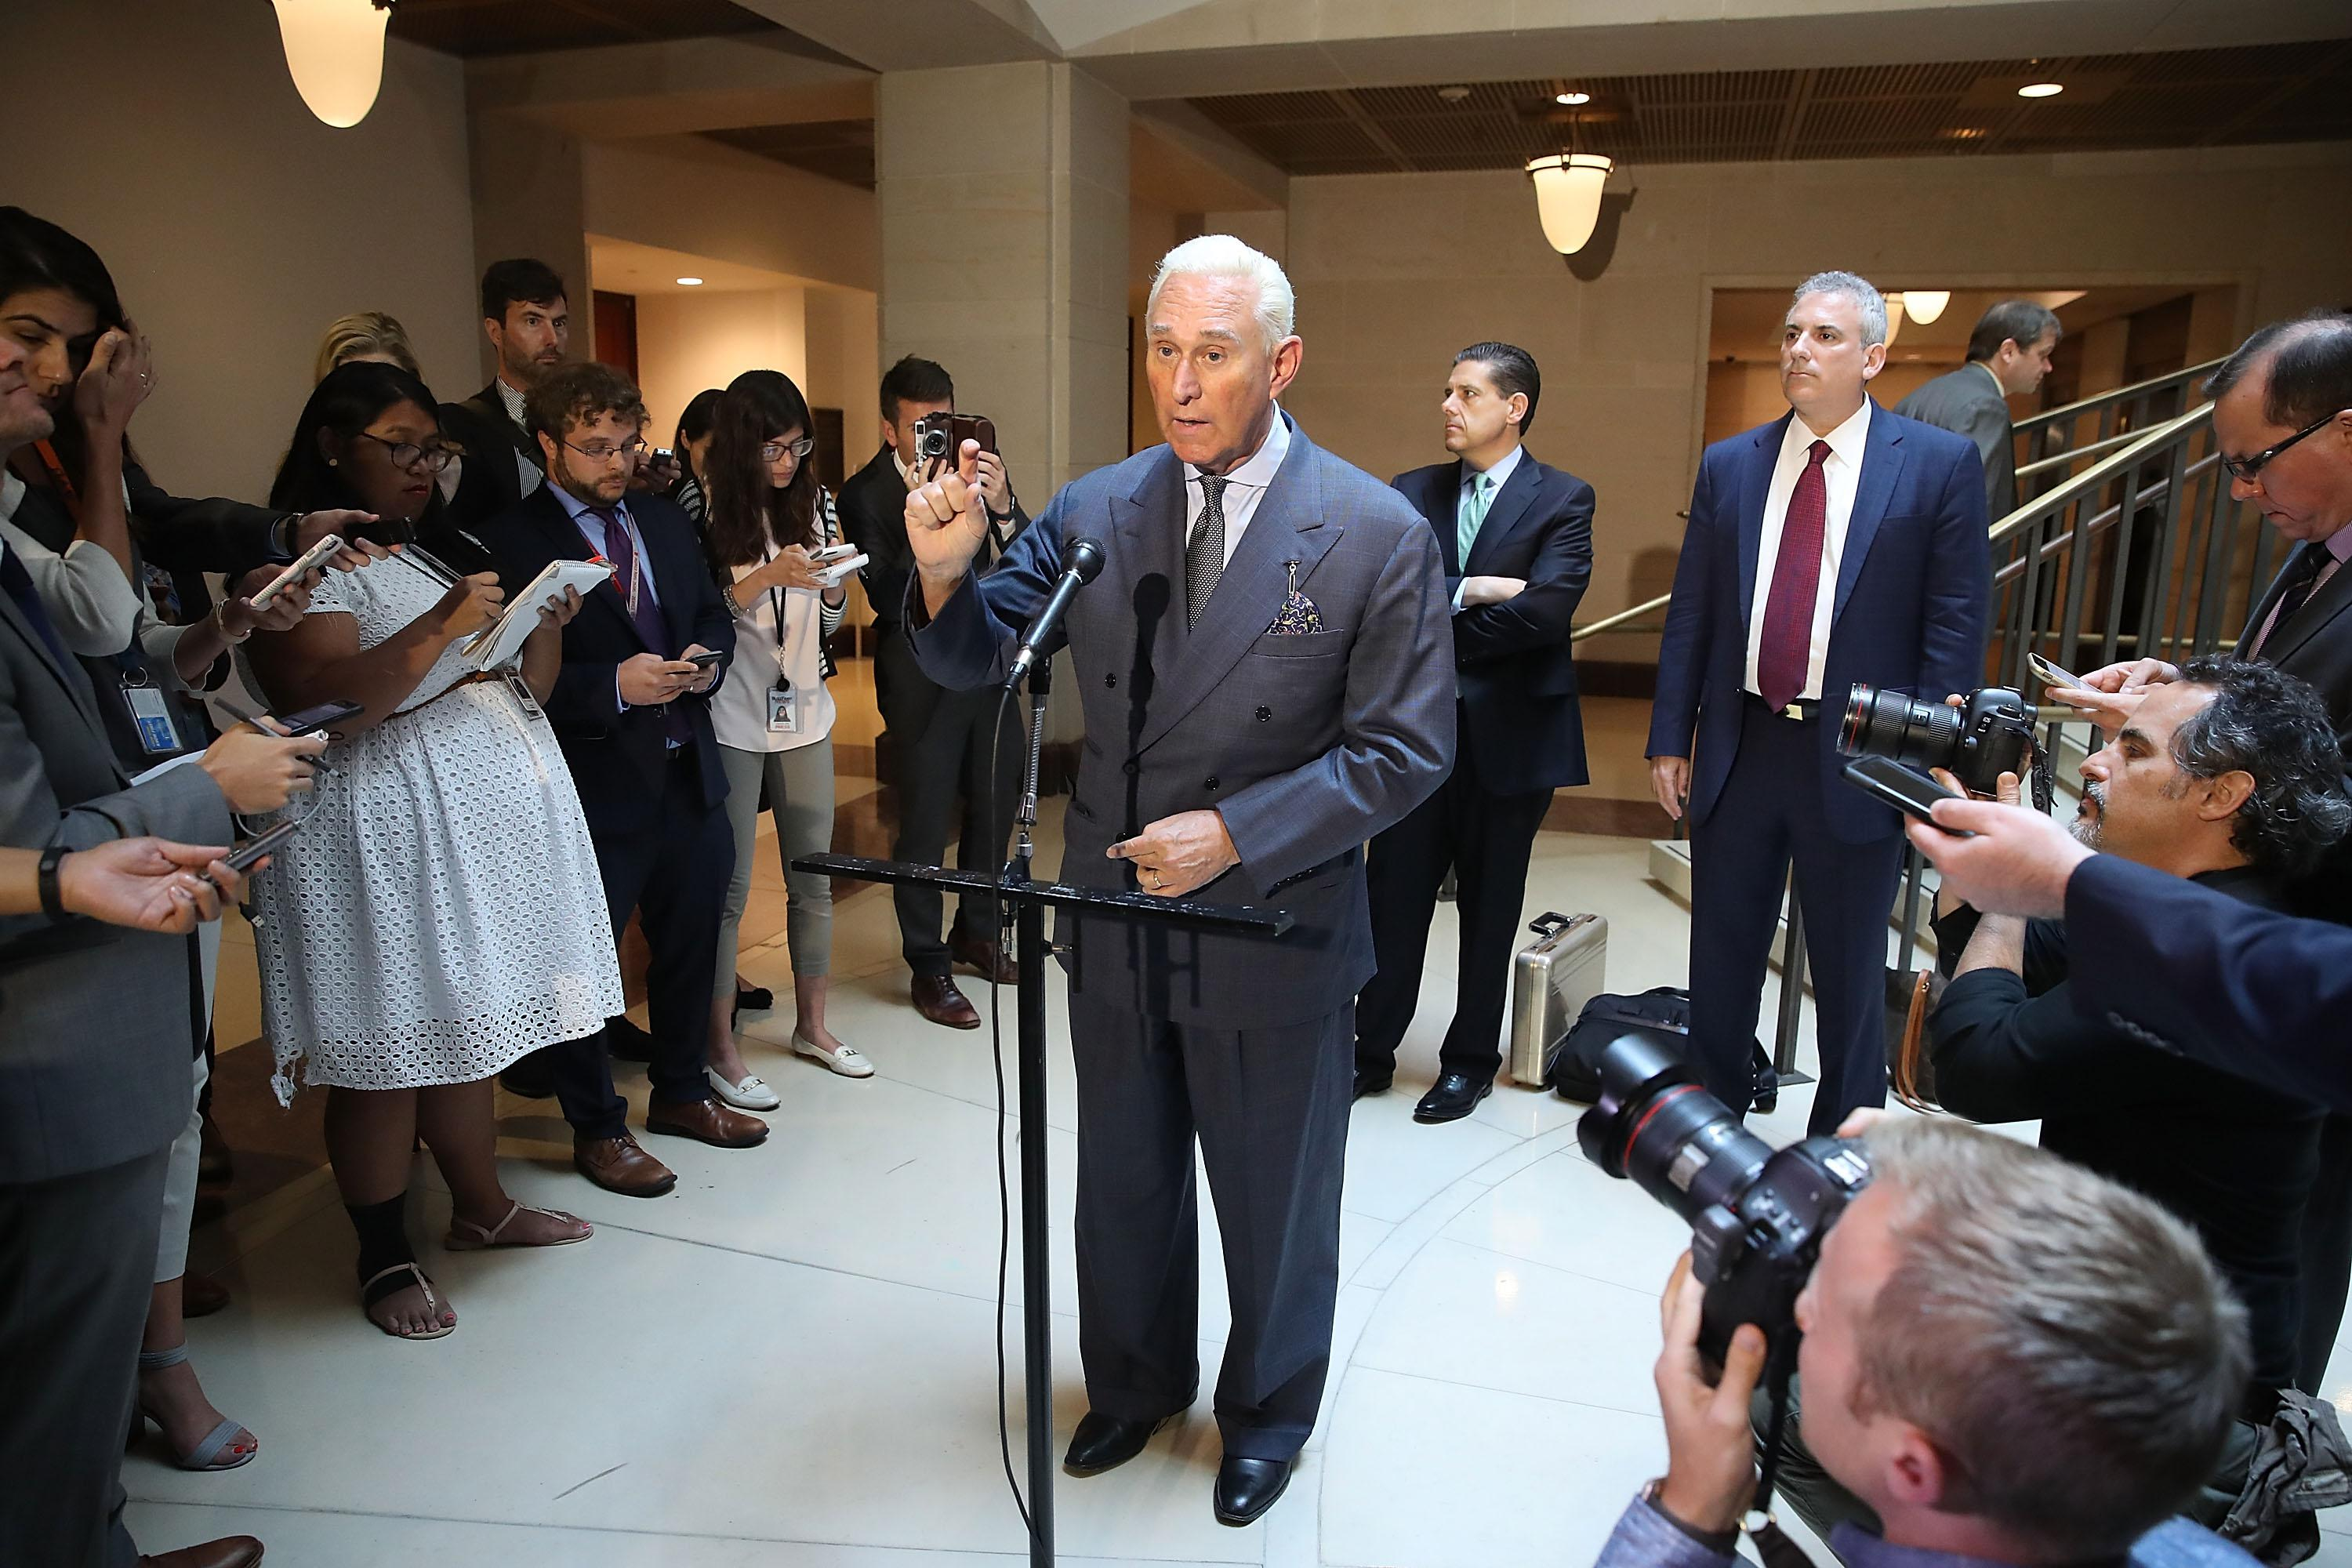 Roger Stone speaking in the US Capitol to reporters